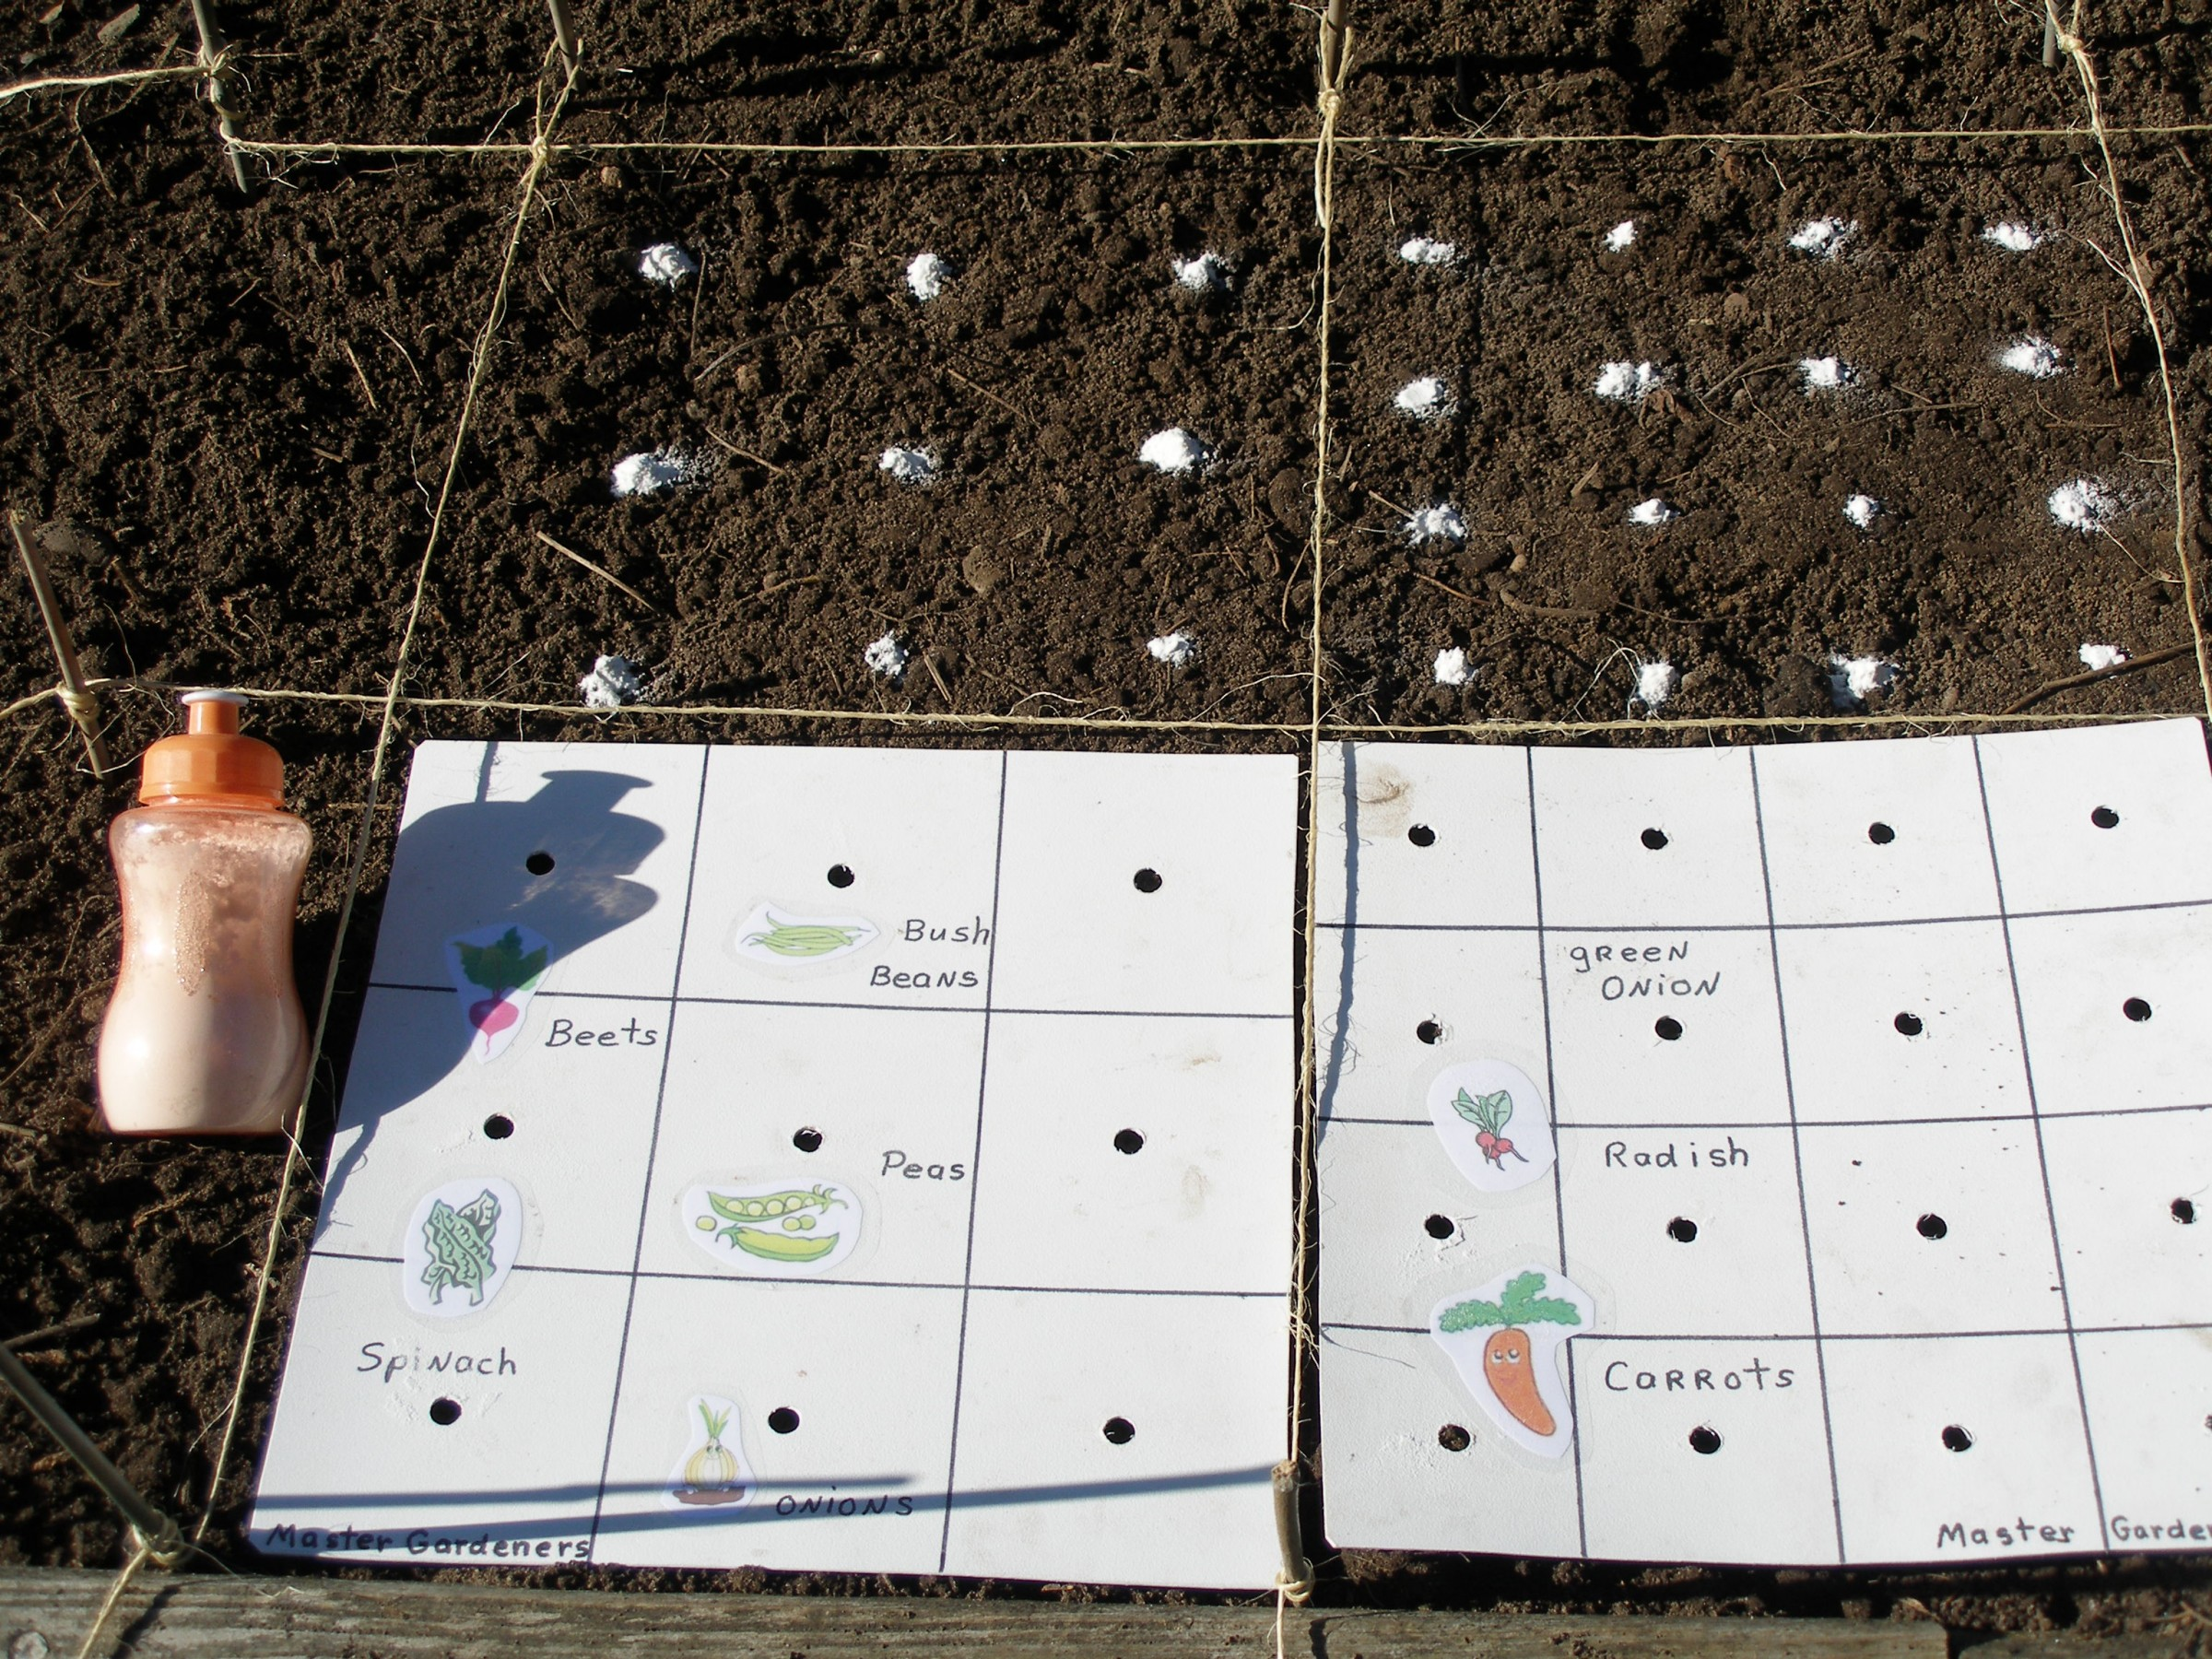 Square Foot Gardening planting design